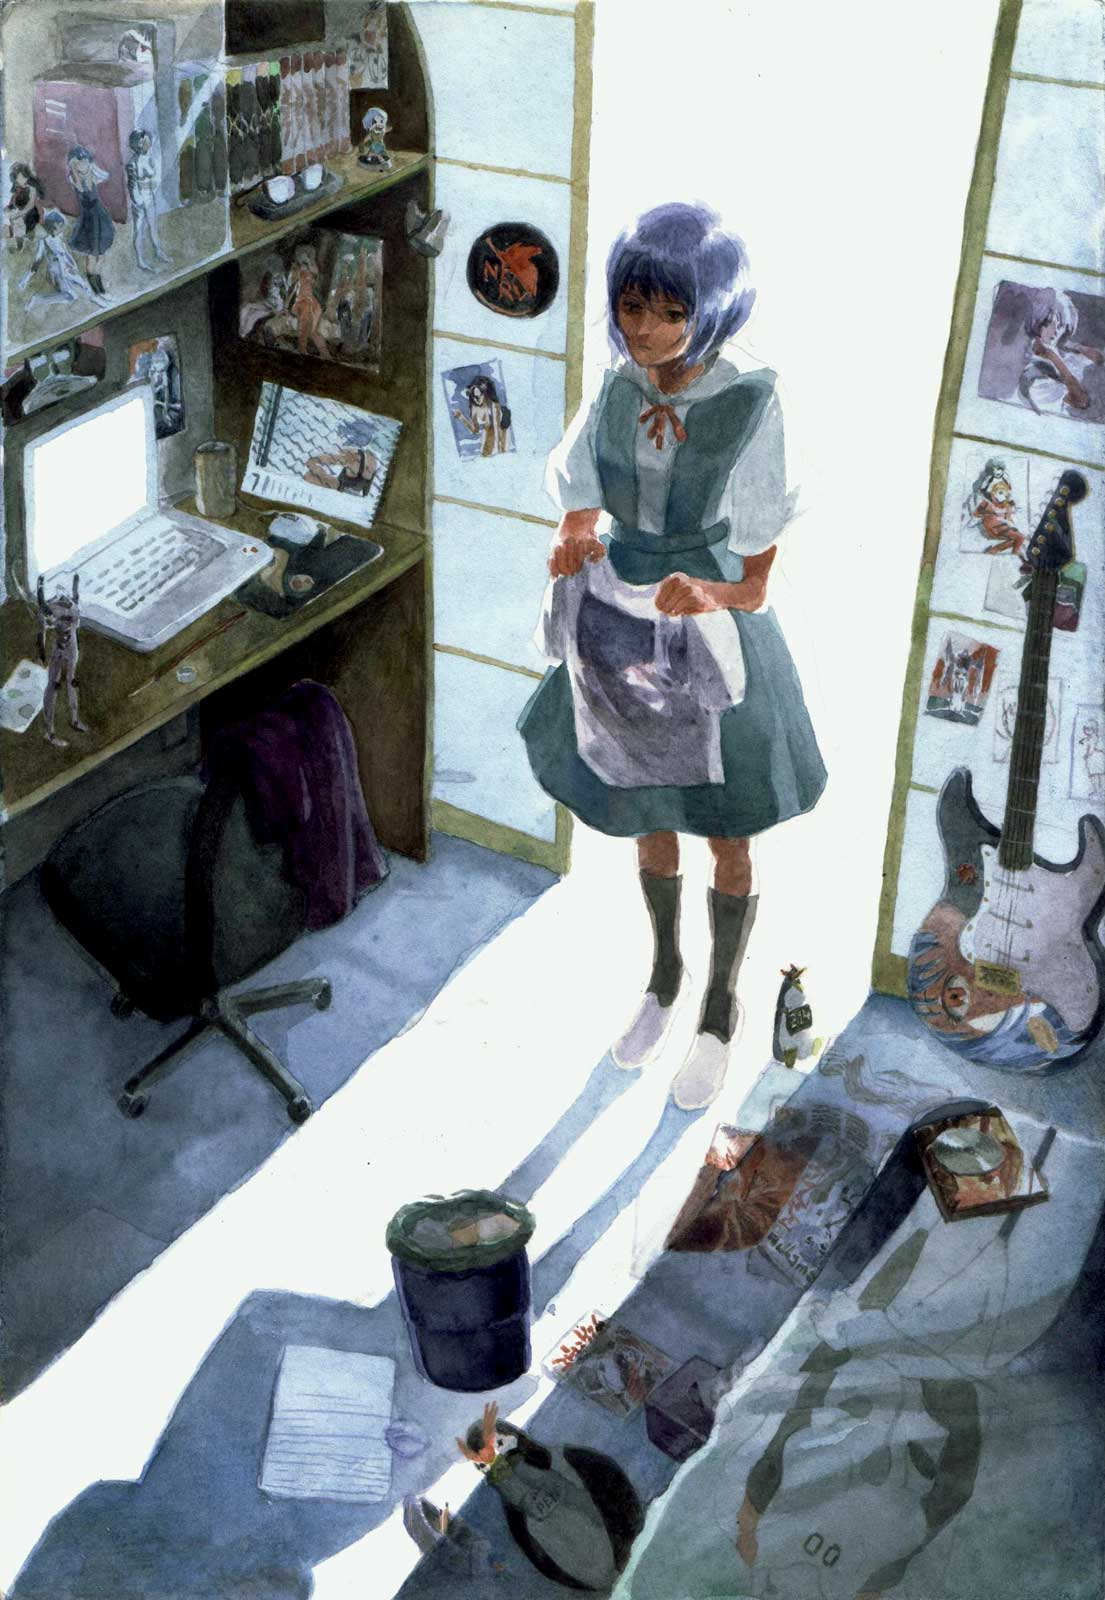 Introspective fanart of Neon Genesis Evangelion's character Rei Ayanami if she was faced with an actual collection about her in an otaku's room.